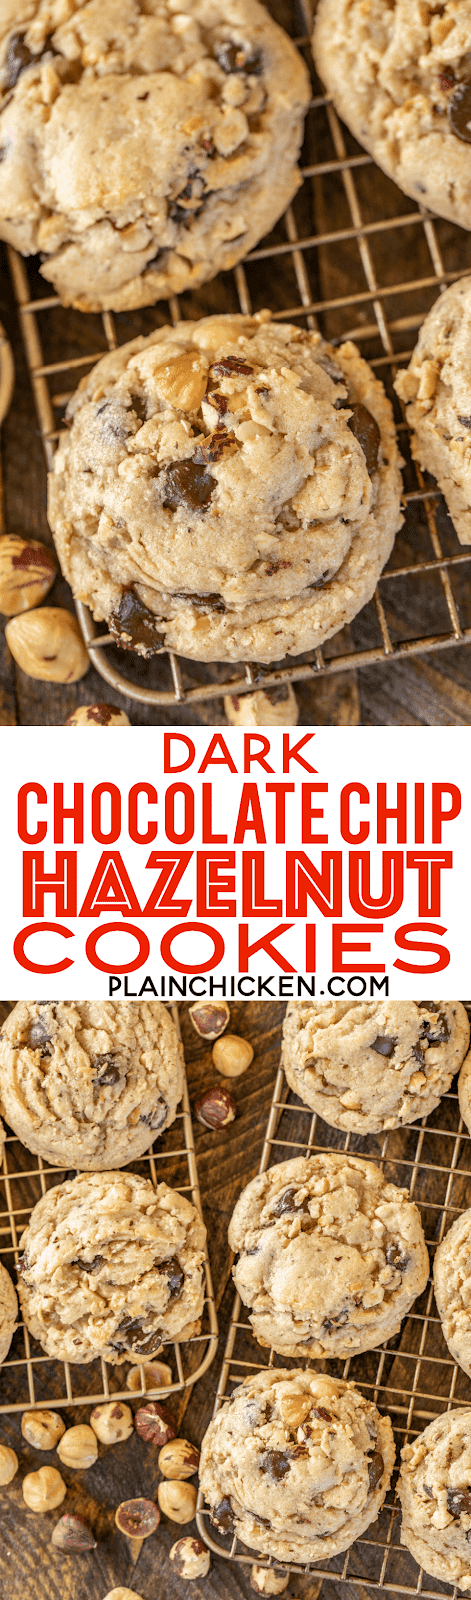 Dark Chocolate Chip Hazelnut Cookies - dangerously delicious! Crunchy on the outside and chewy on the inside - perfect!!! Can make dough ahead of time and freeze for a quick sweet treat later. Bisquick, brown sugar, white sugar, butter, egg, vanilla, dark chocolate chips, hazelnuts. These things FLY off the plate. All you need is a glass of milk and you are set! SO good! #cookies #bisquick #hazelnuts